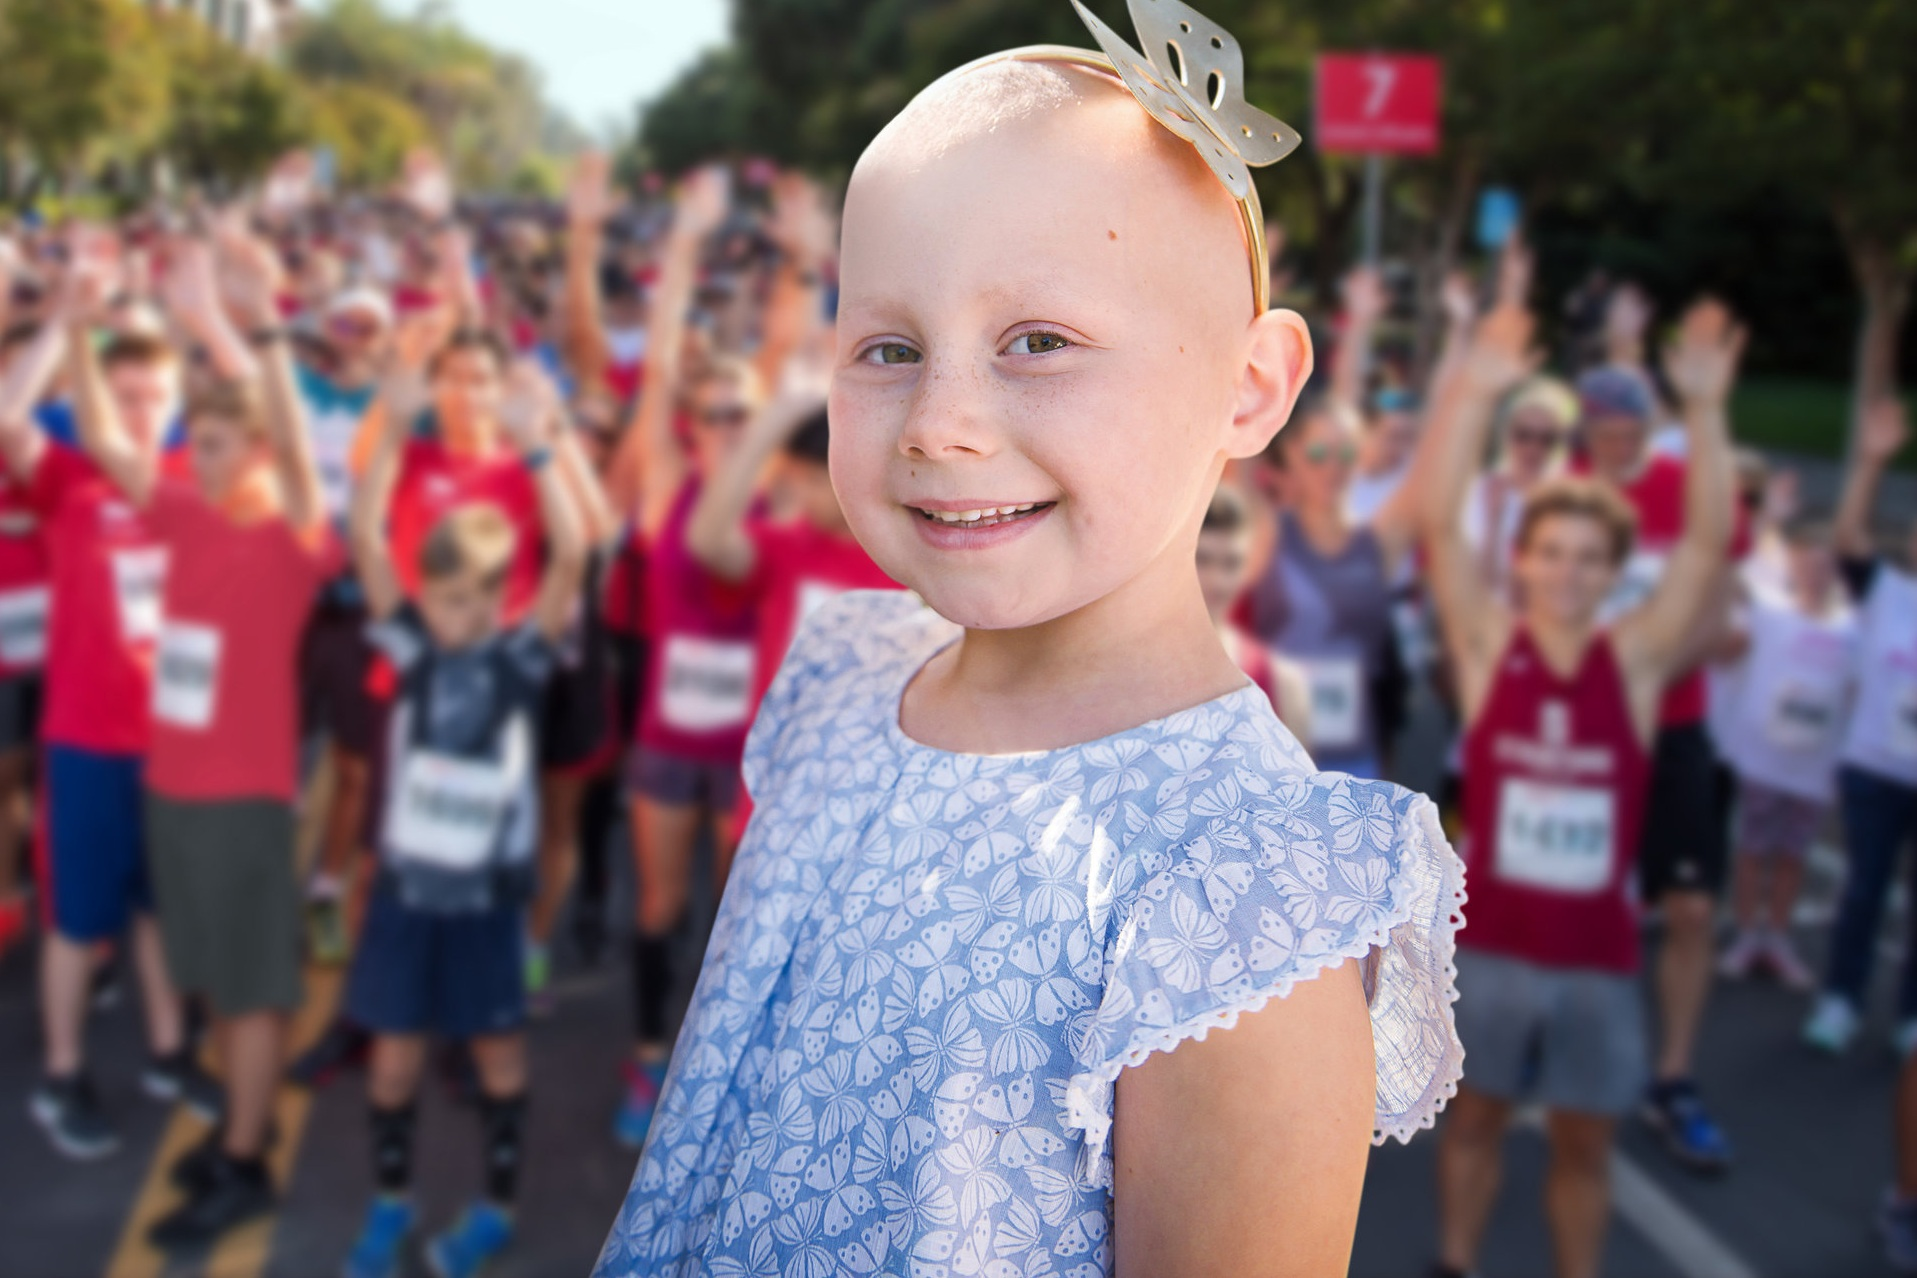 Claire, 7, Cancer patient